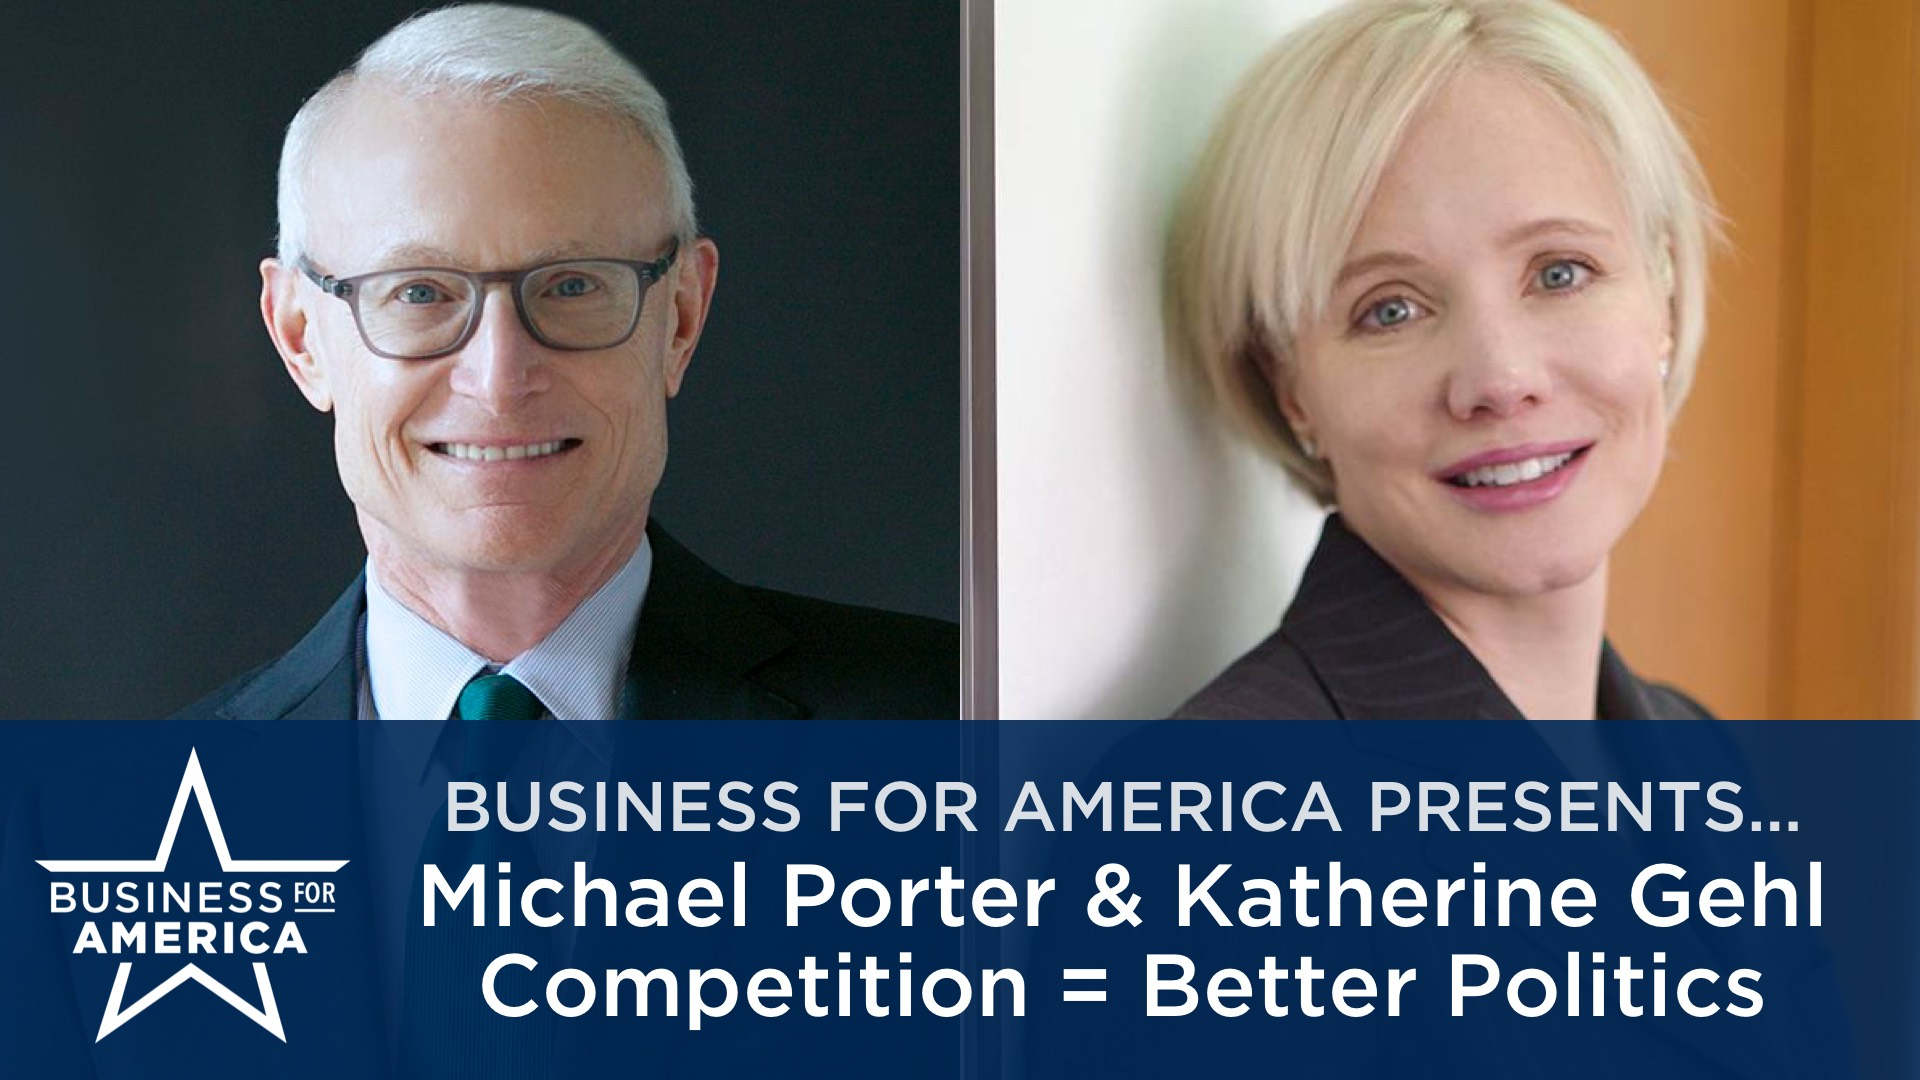 HBS's Michael Porter & CEO Katherine Gehl • America Needs Competition in Politics